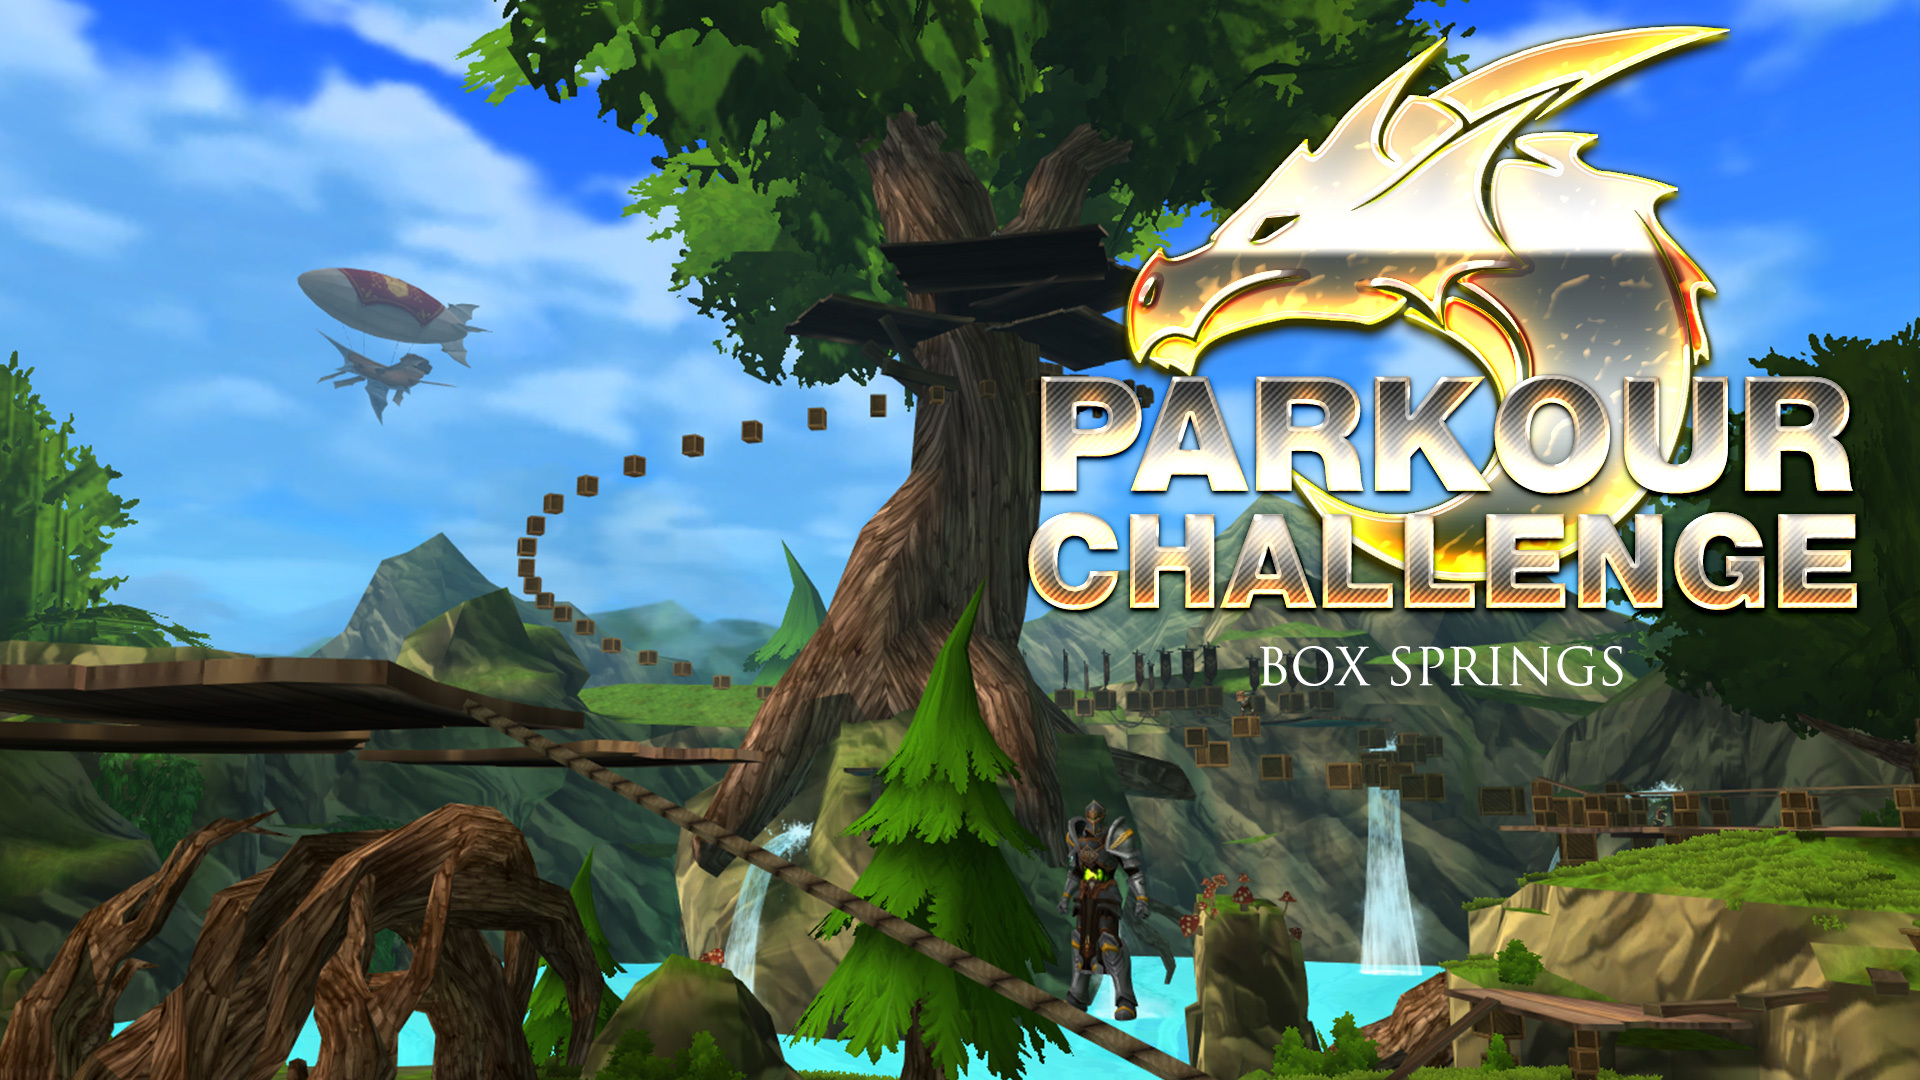 AdventureQuest 3D :: Parkour Challenge! Earn 3 badges in Box